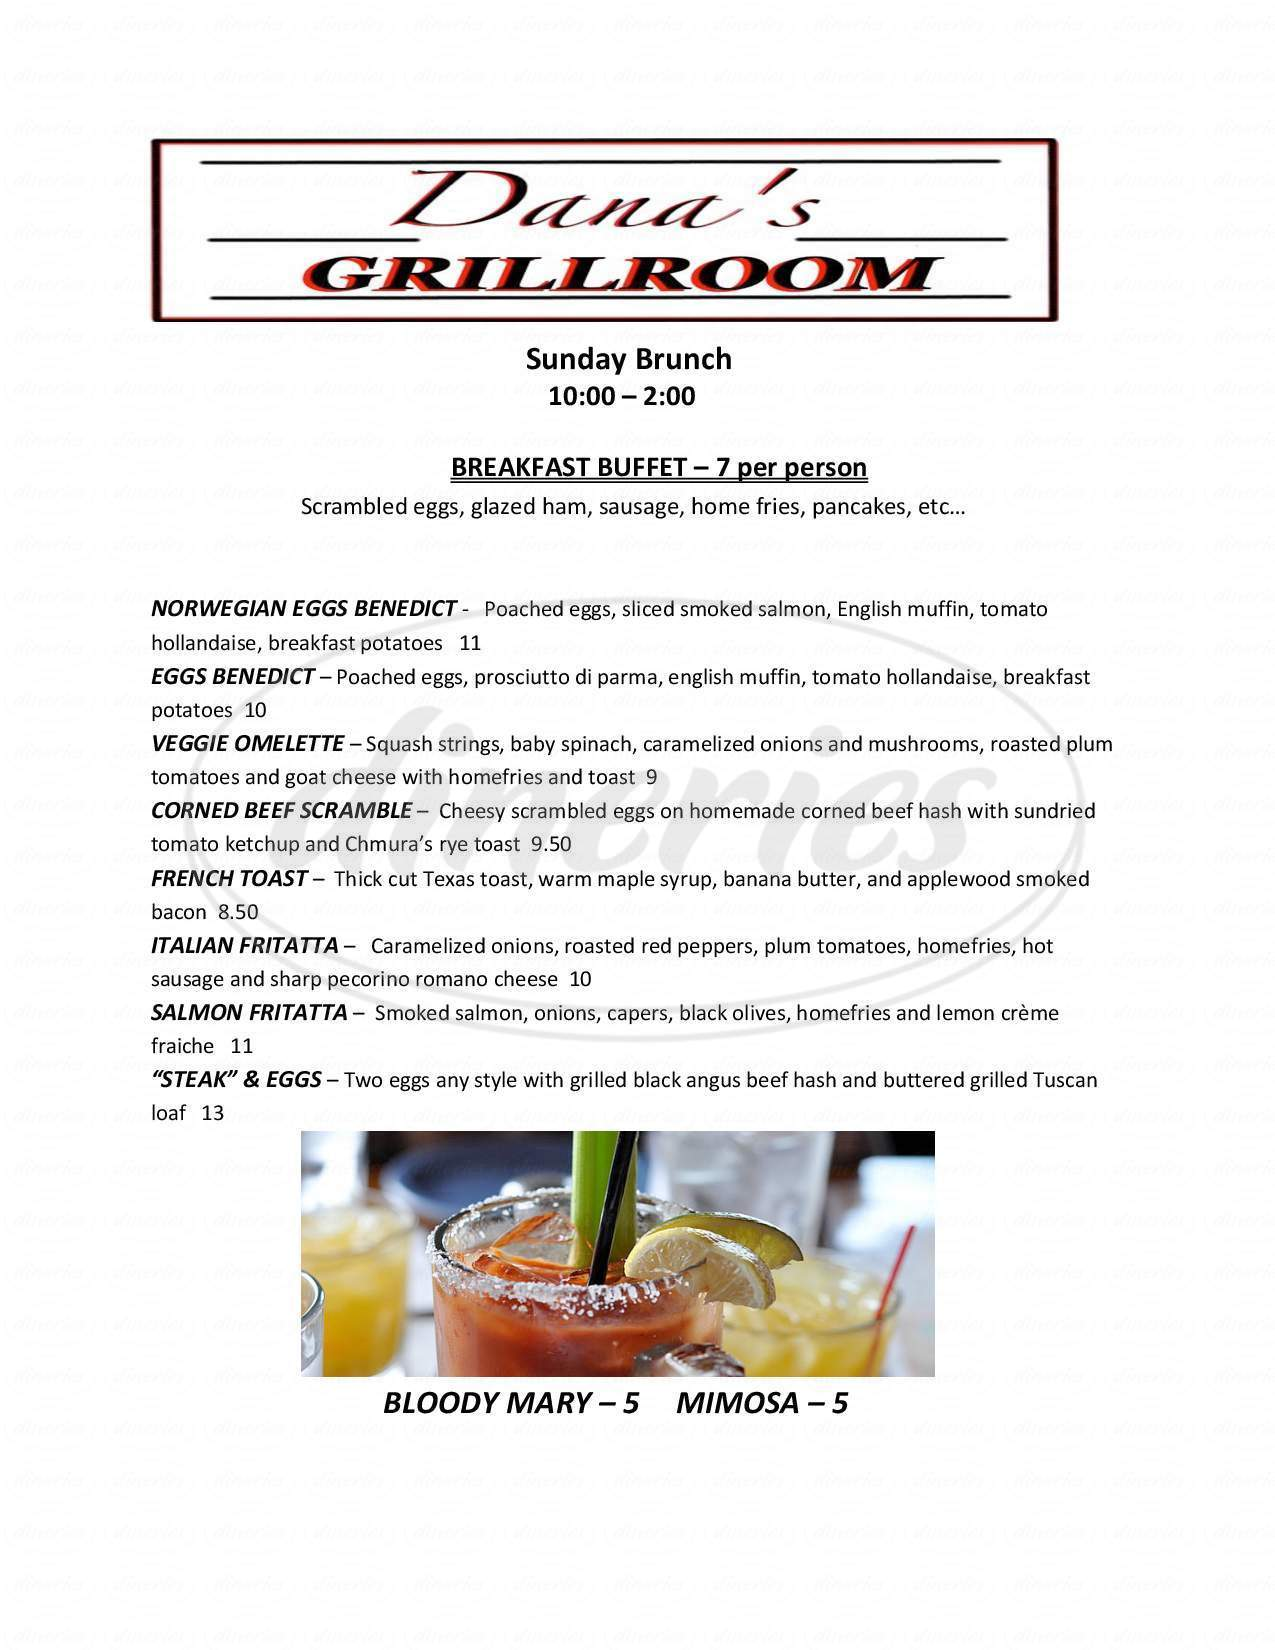 menu for Danas Grill Room